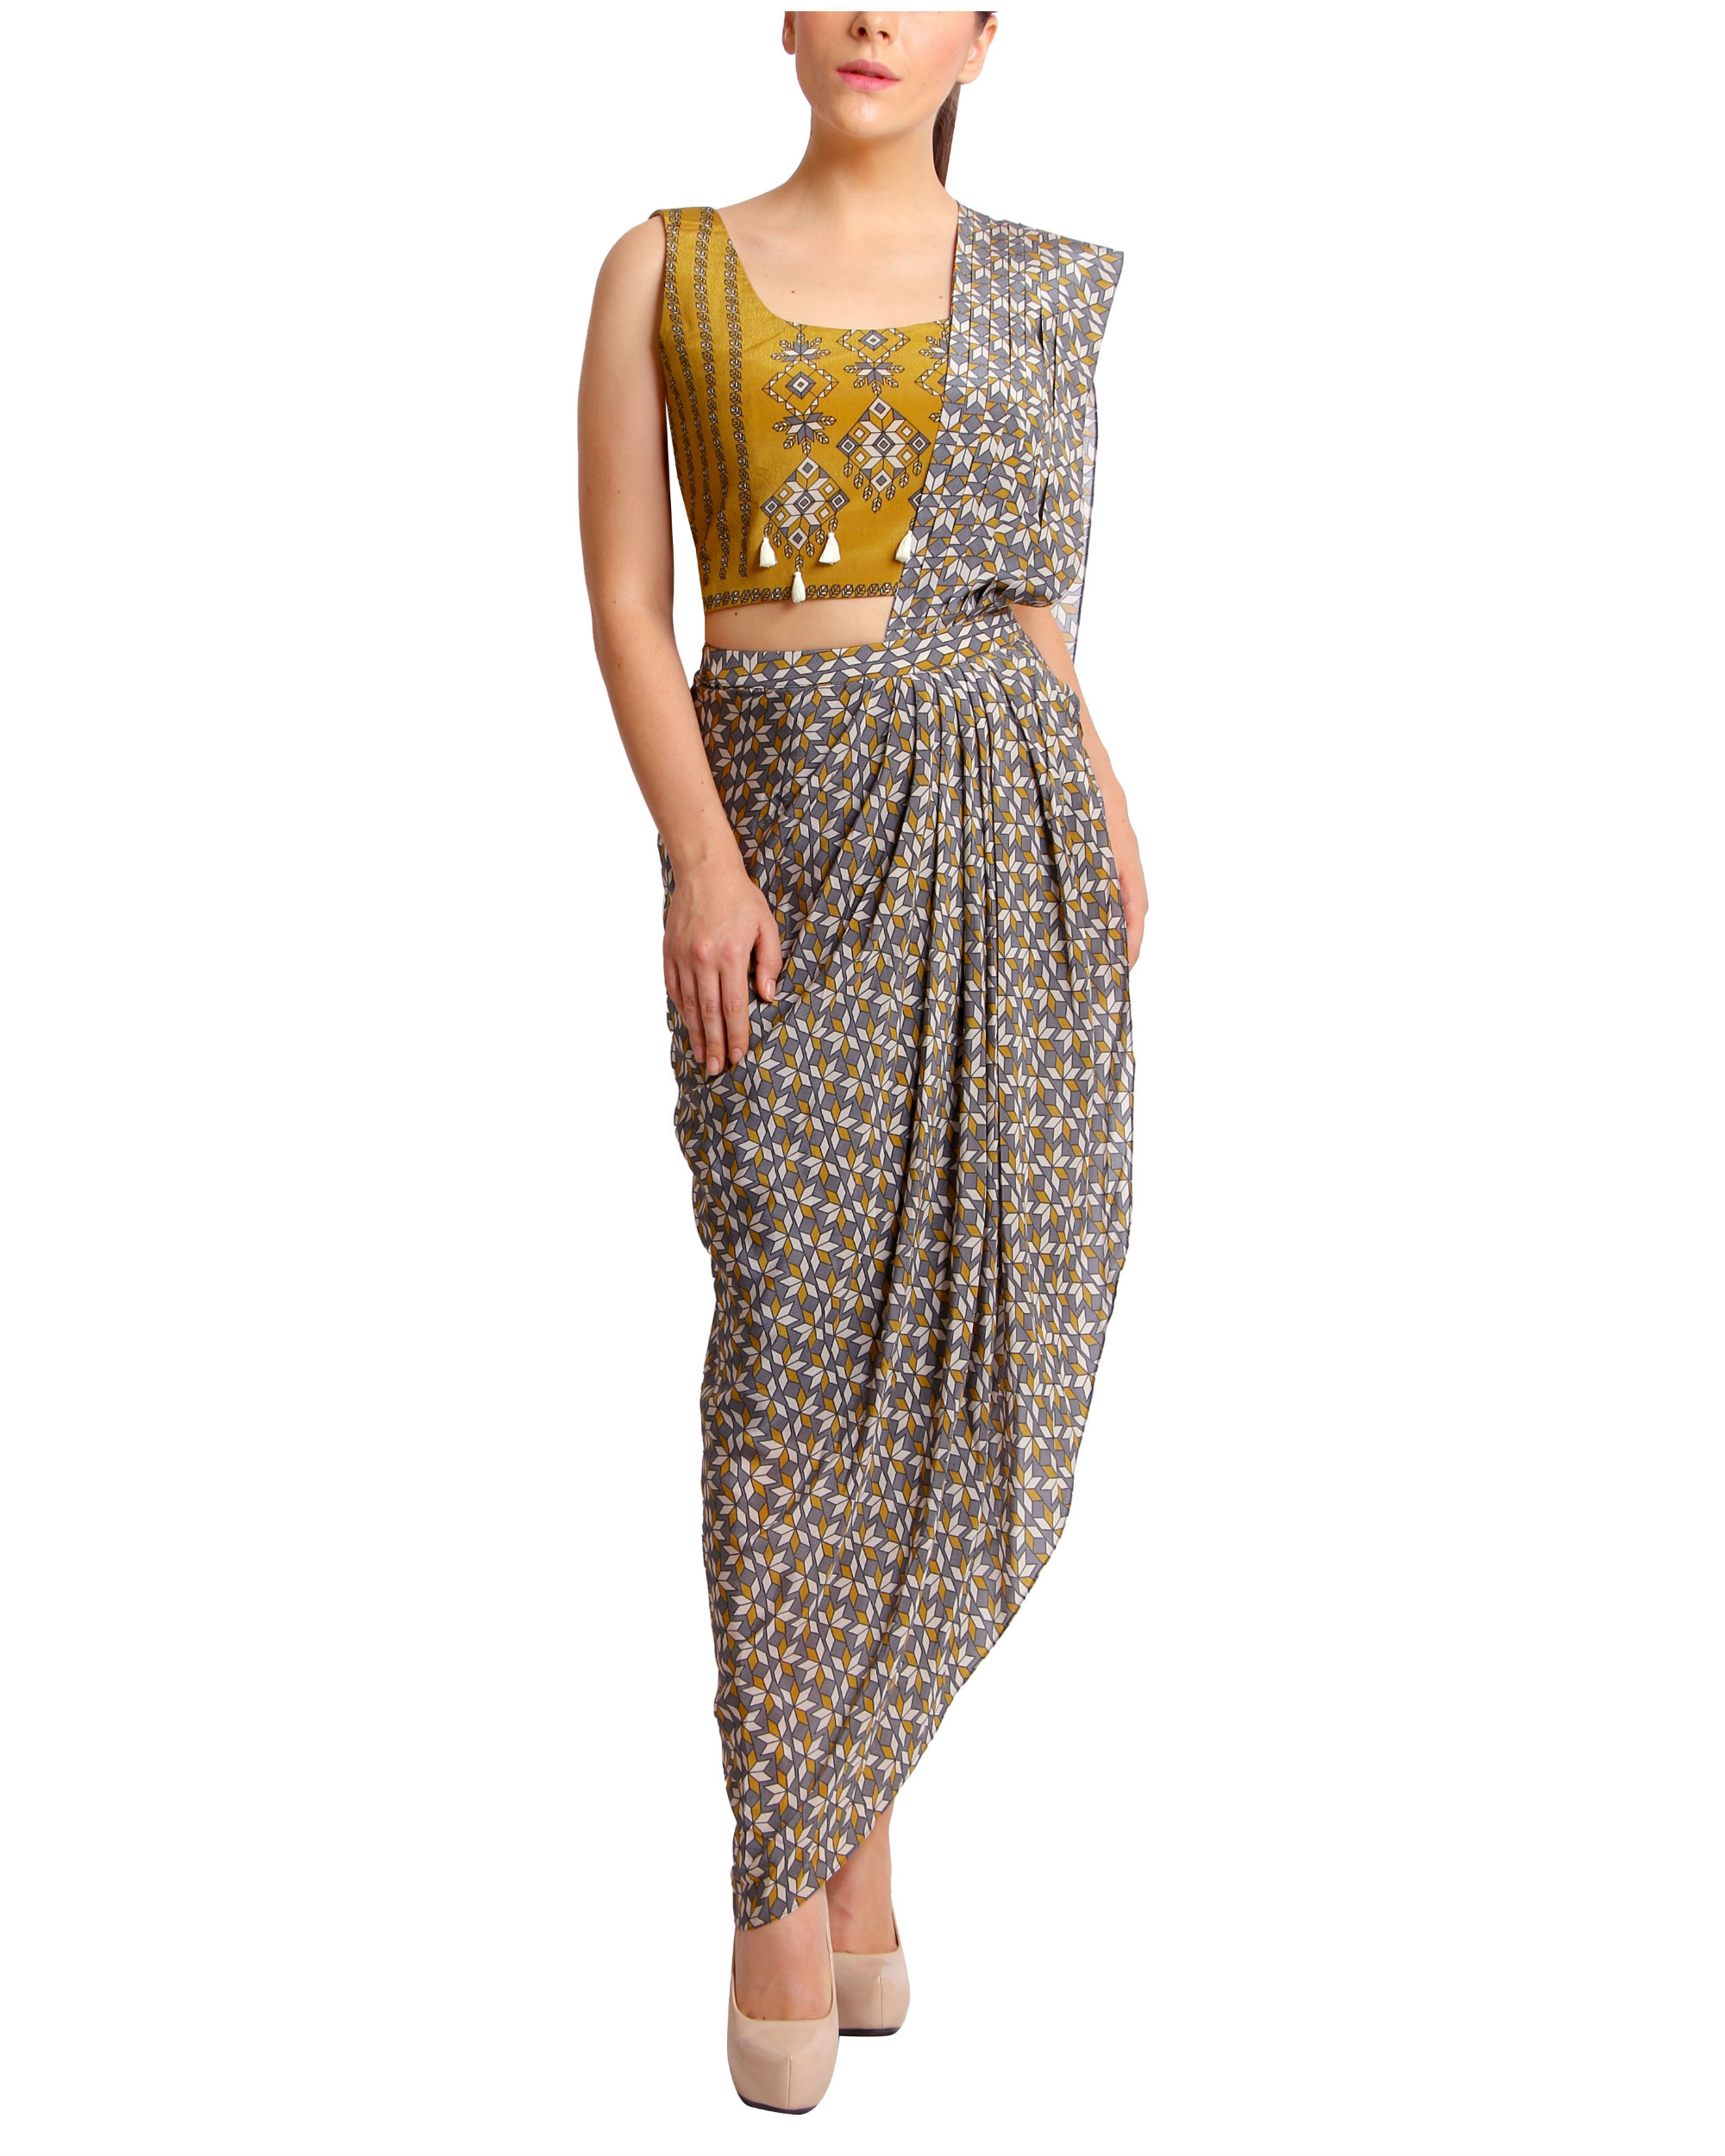 Mustard and grey draped sari